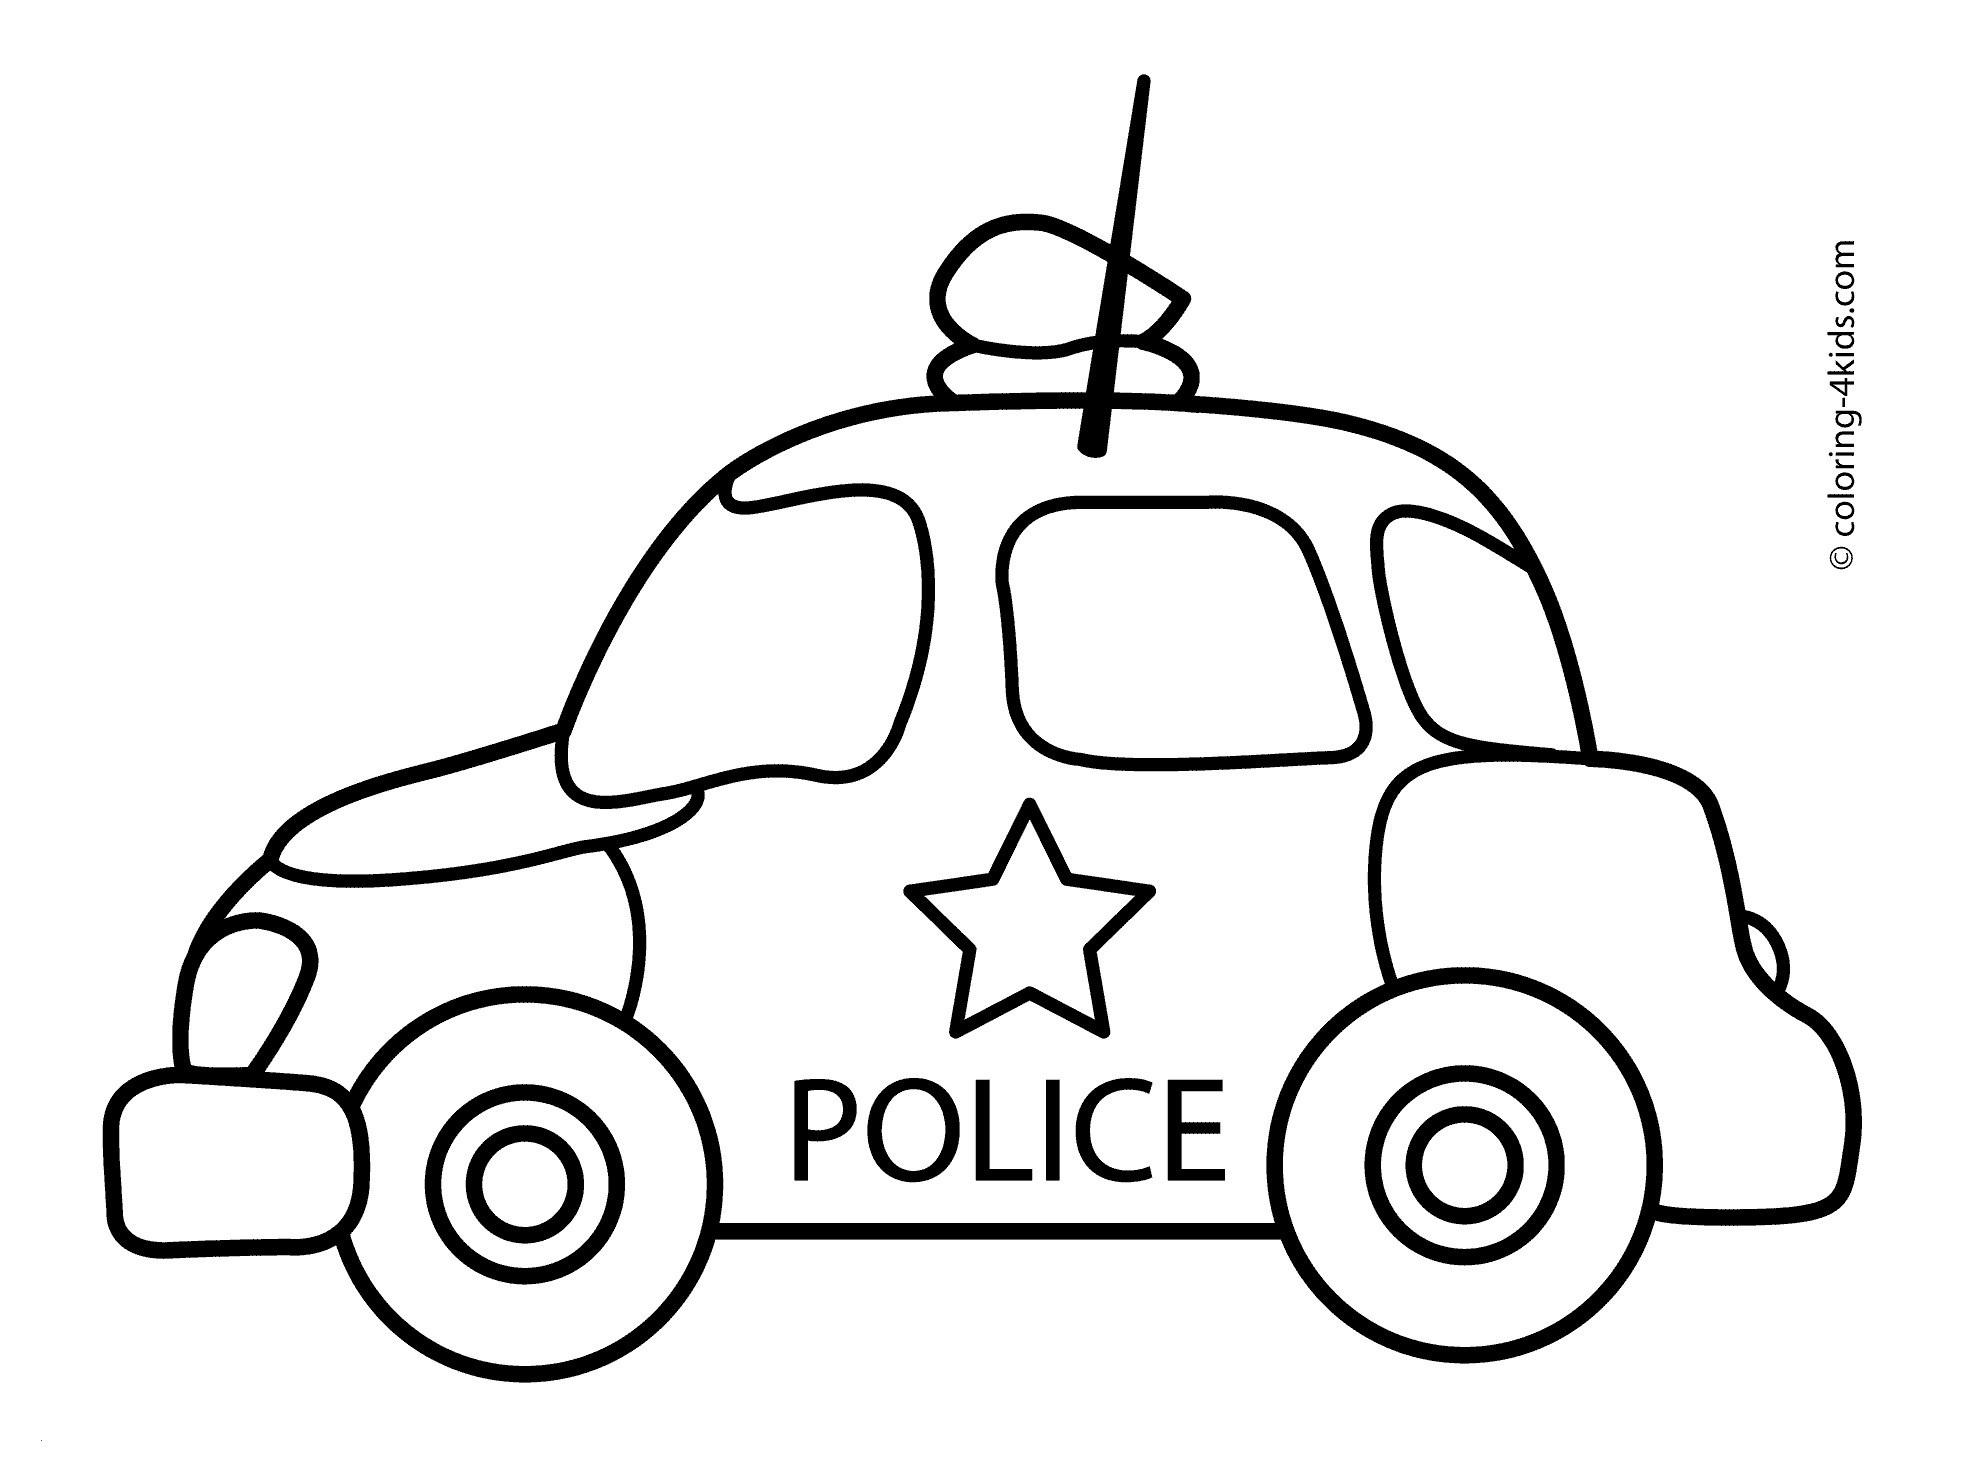 Volkswagen Coloring Pages  Gallery 1r - To print for your project